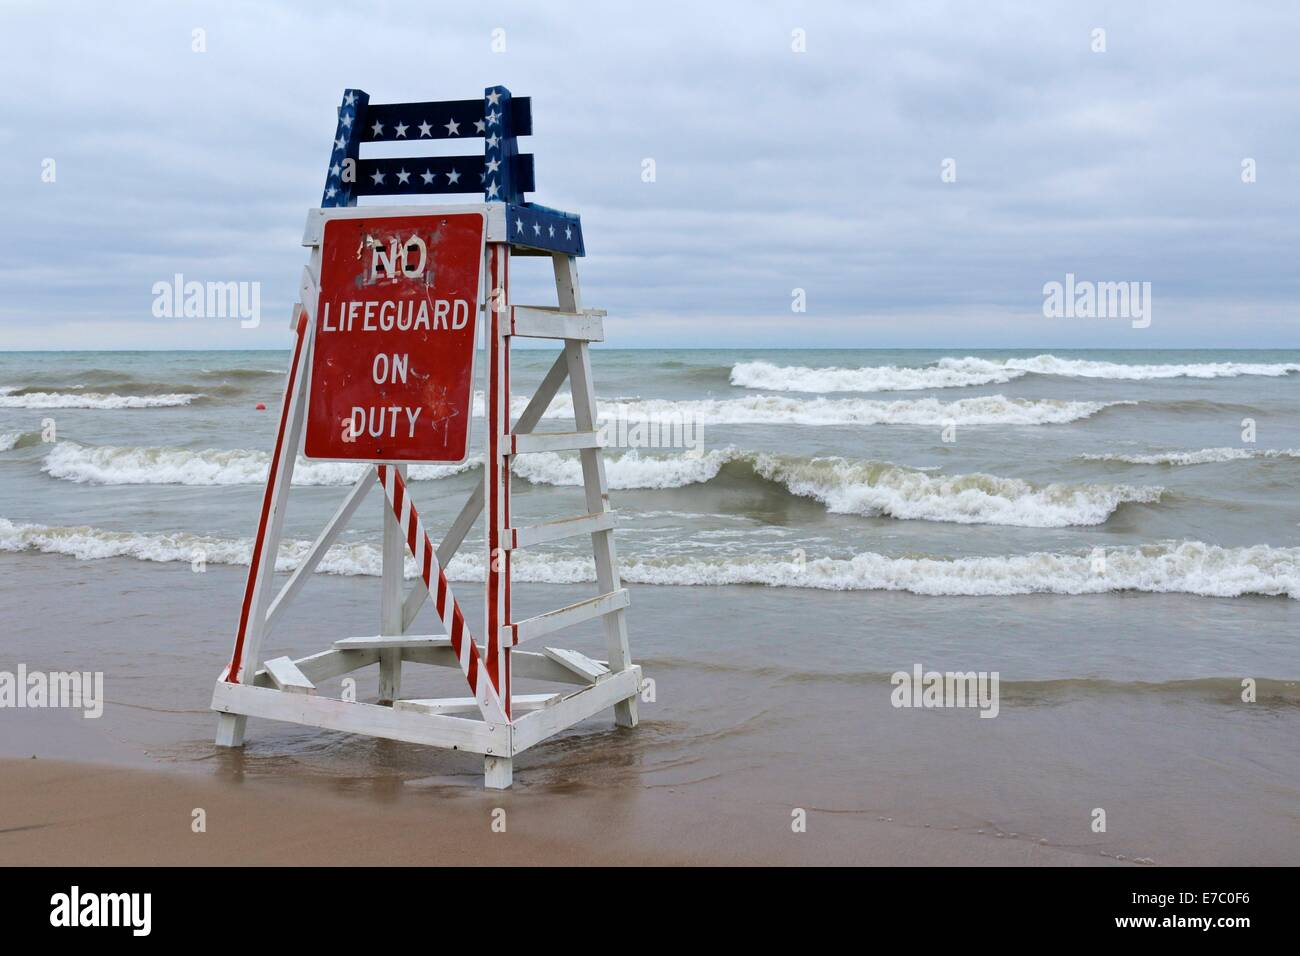 6e5e6d113e8 Empty lifeguard tower with No Lifeguard on Duty sign on deserted beach at  swimming season s end